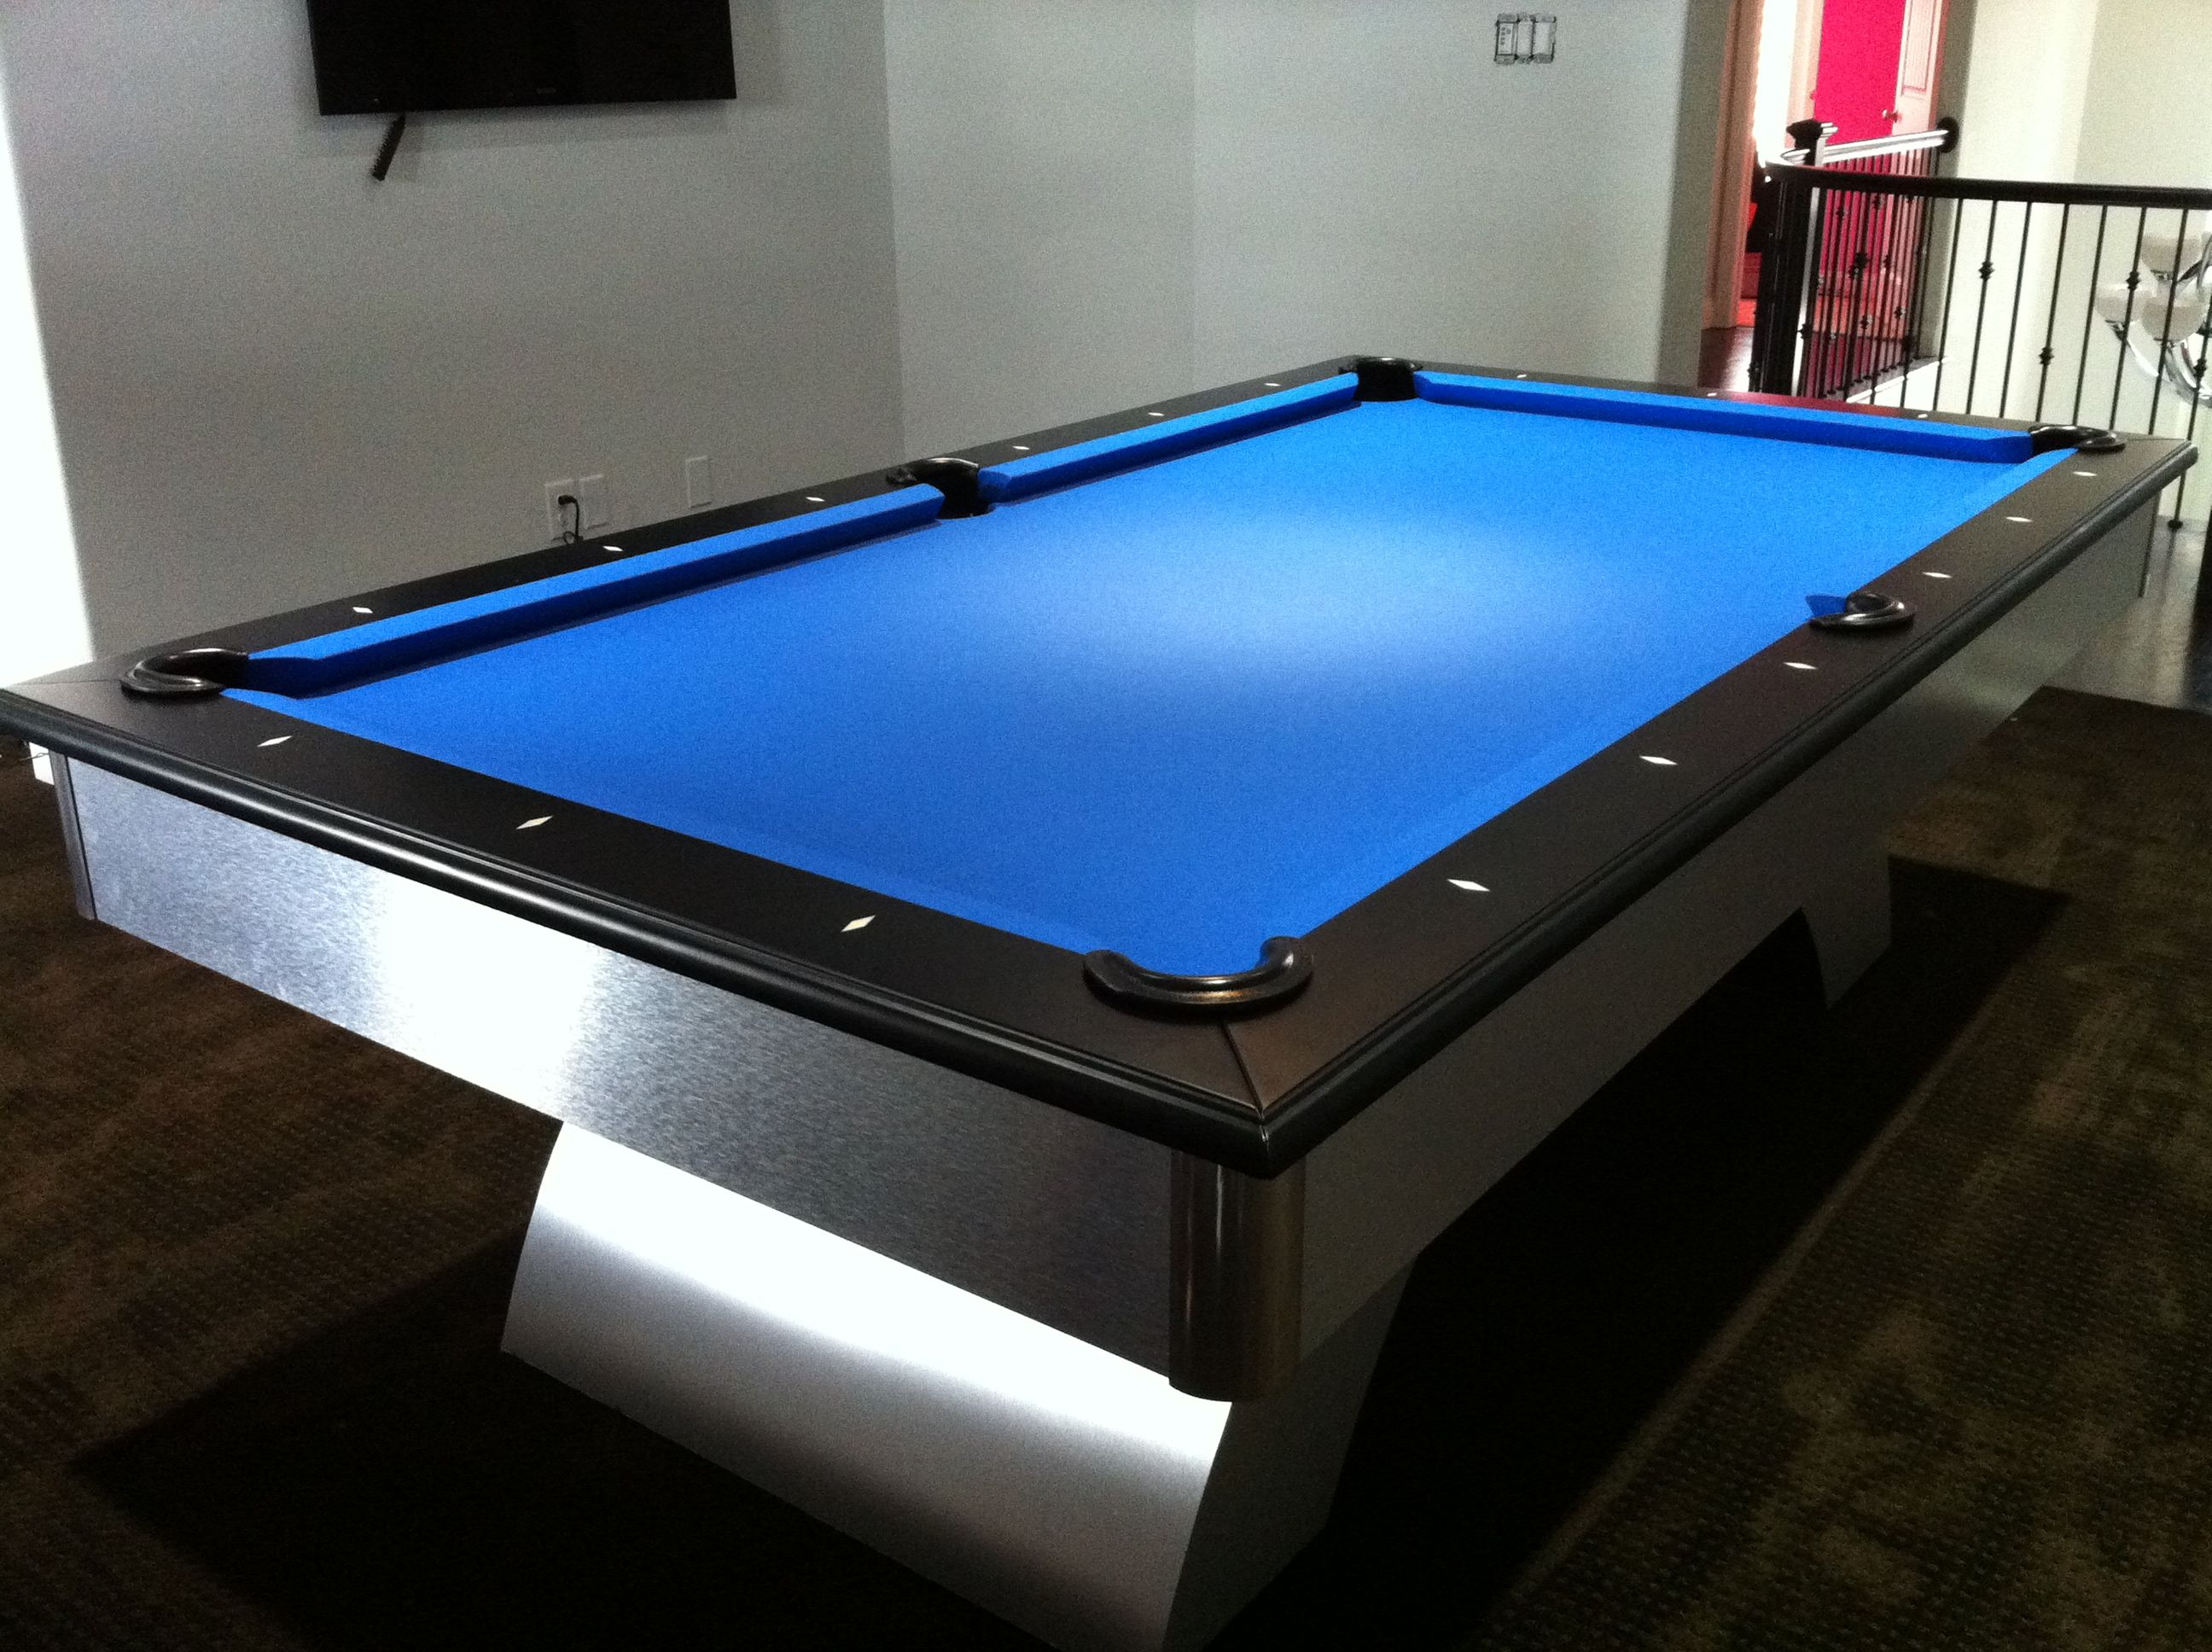 Pool Tables 139 Pool Table Pool Tables For Sale Game Room Design